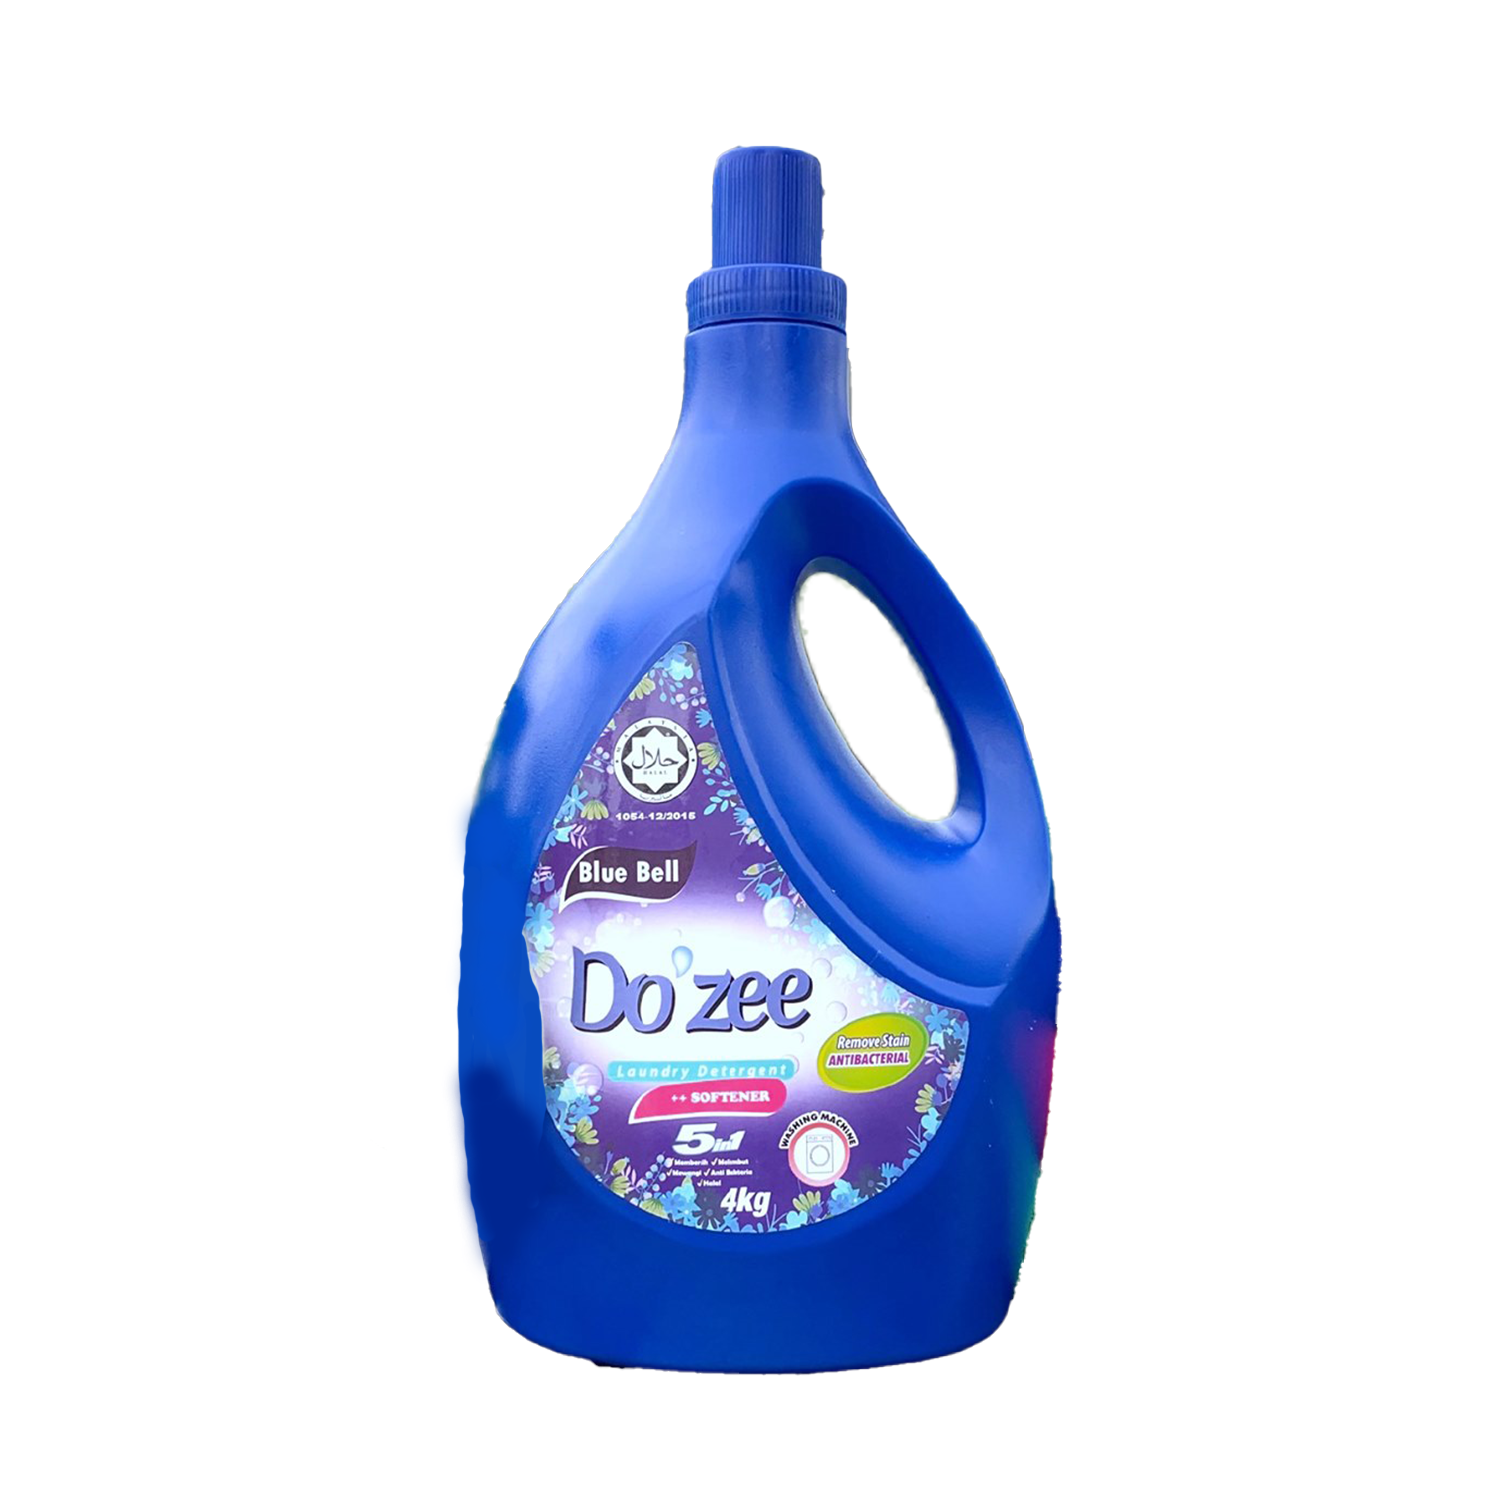 Do'Zee Concentrated Detergent Blue Bell 4KG